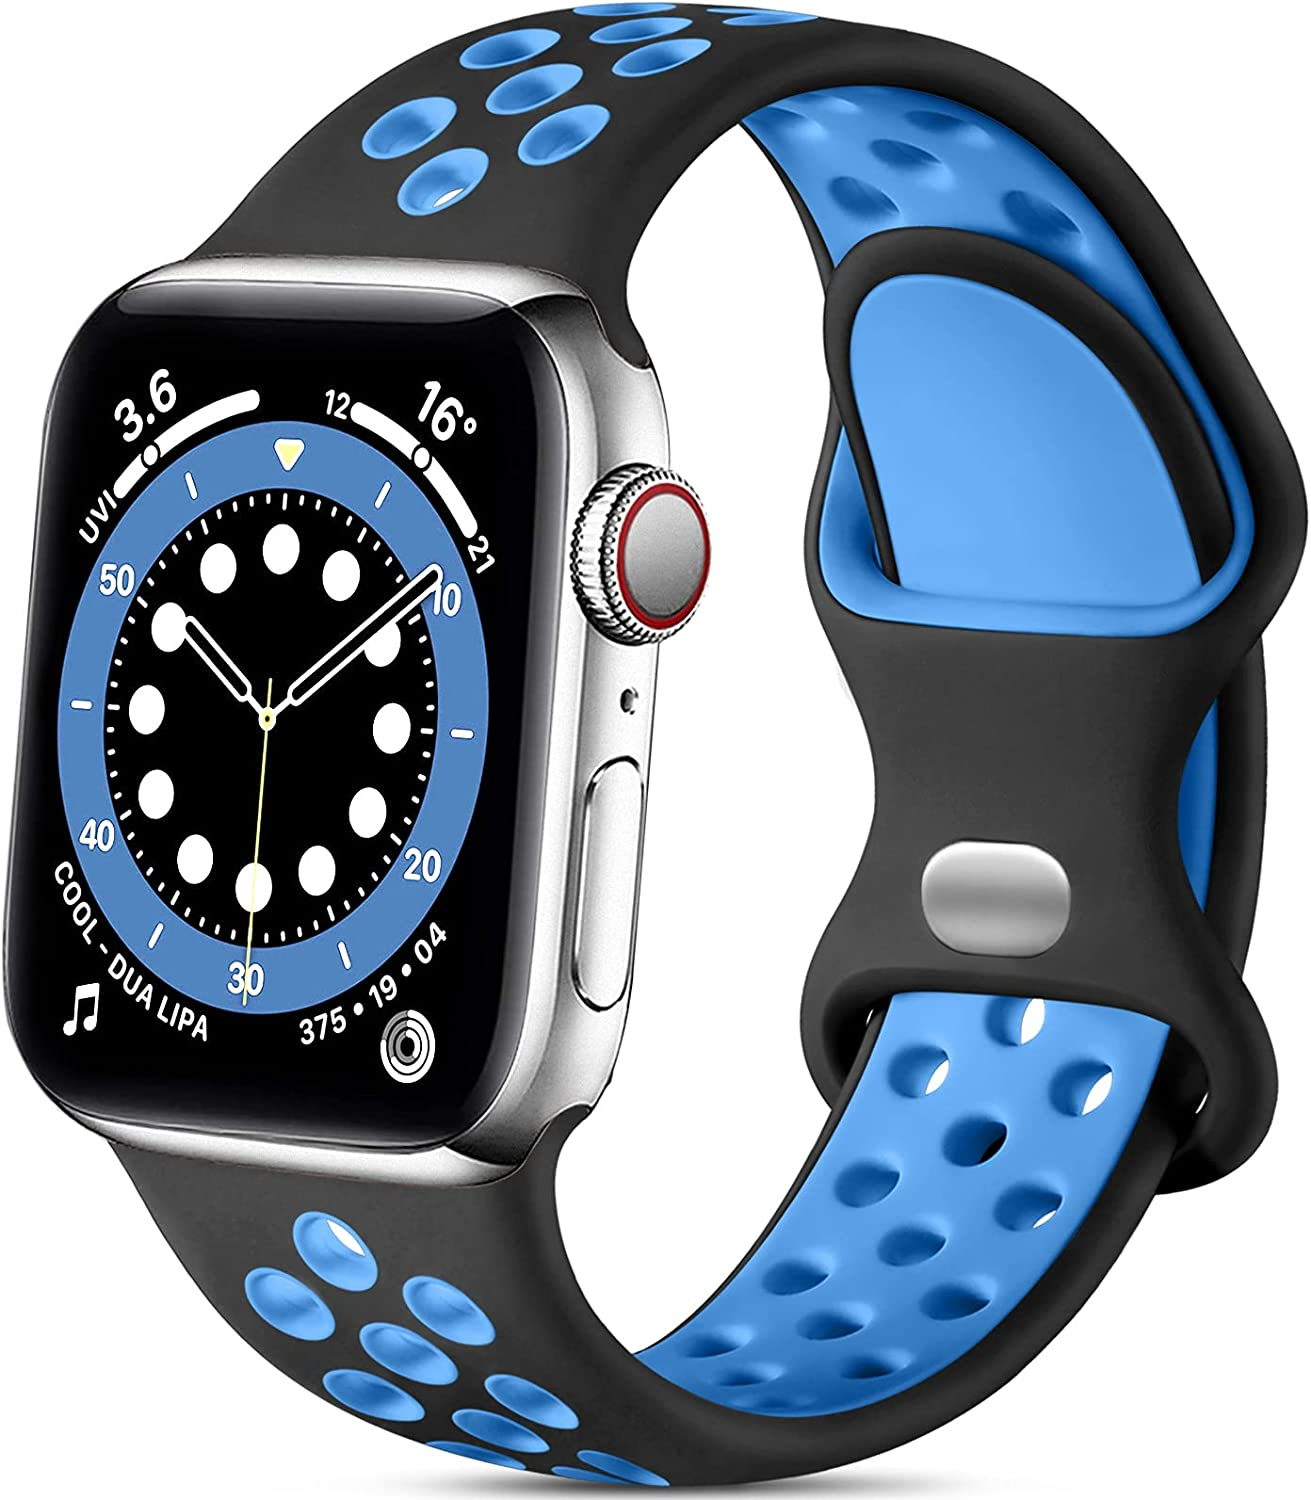 Lerobo Bands Compatible with Apple Watch Band 44mm 42mm Women Men, Durable Breathable Sport Soft Silicone Replacement Bands Compatible for Apple Watch SE & iWatch Series 6/5/4/3/2/1, Black/Blue, M/L